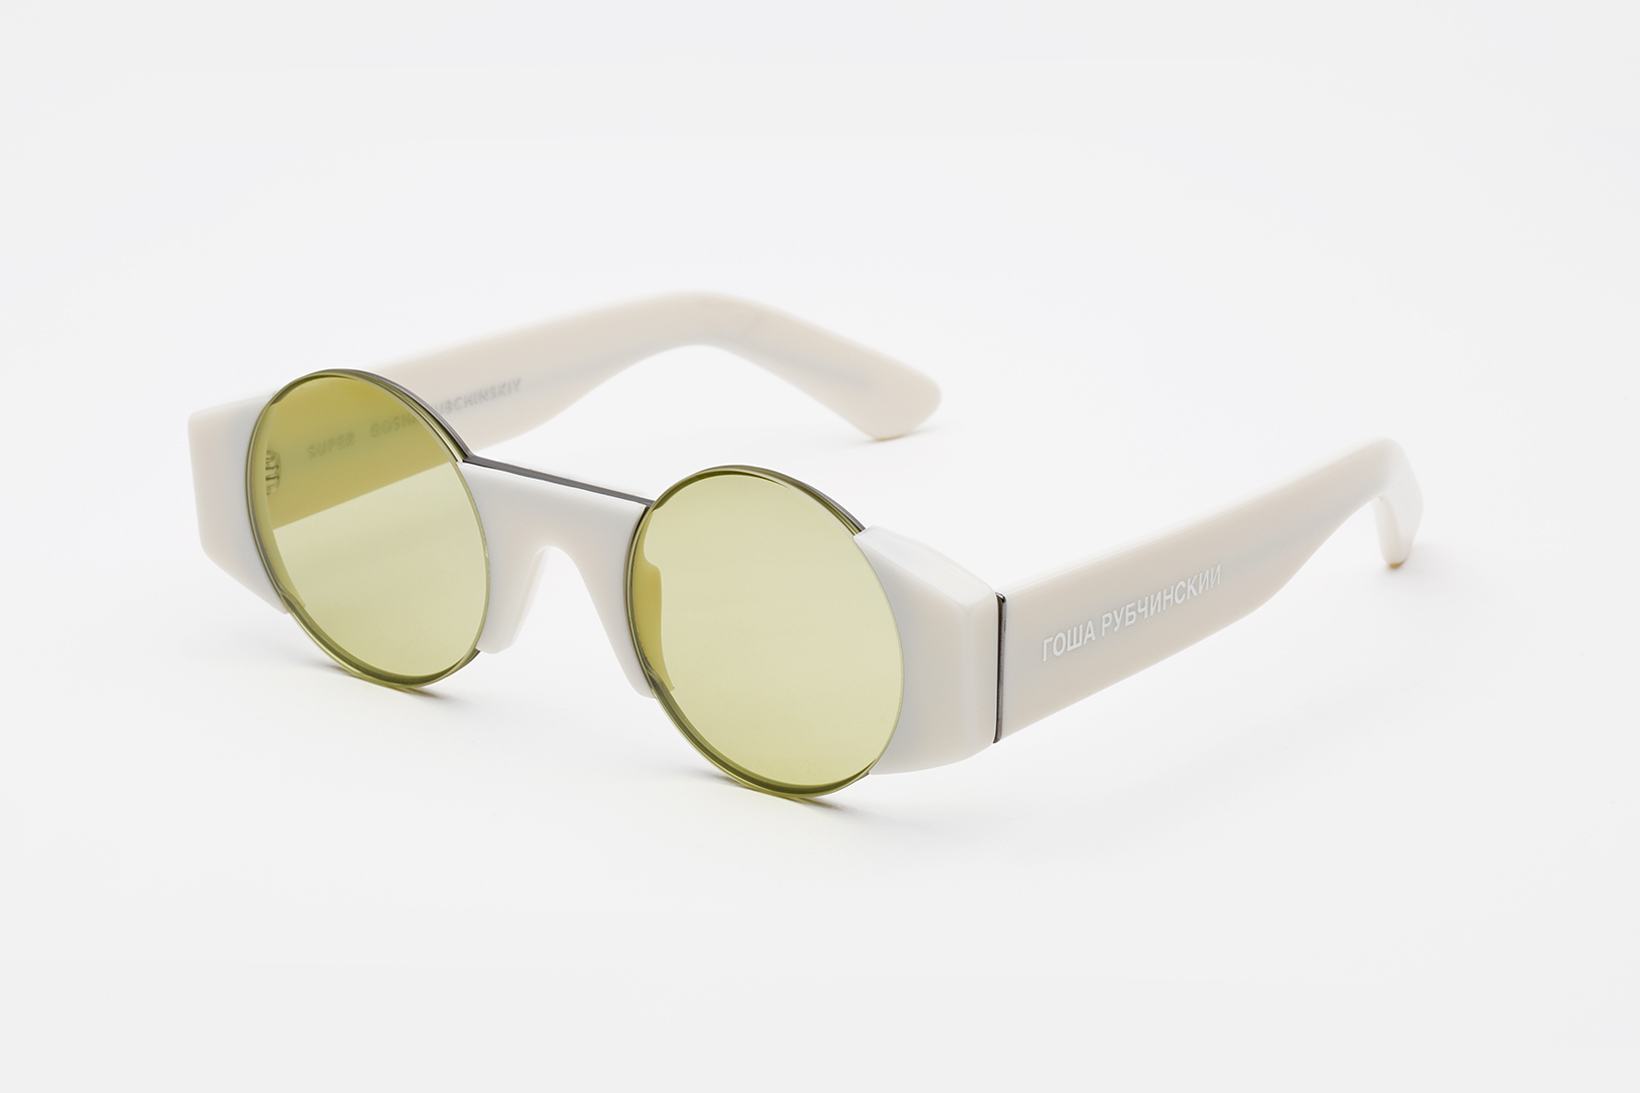 Gosha Rubchinksiy x SUPER by RETROSUPERFUTURE Eyewear Collection - 1844728